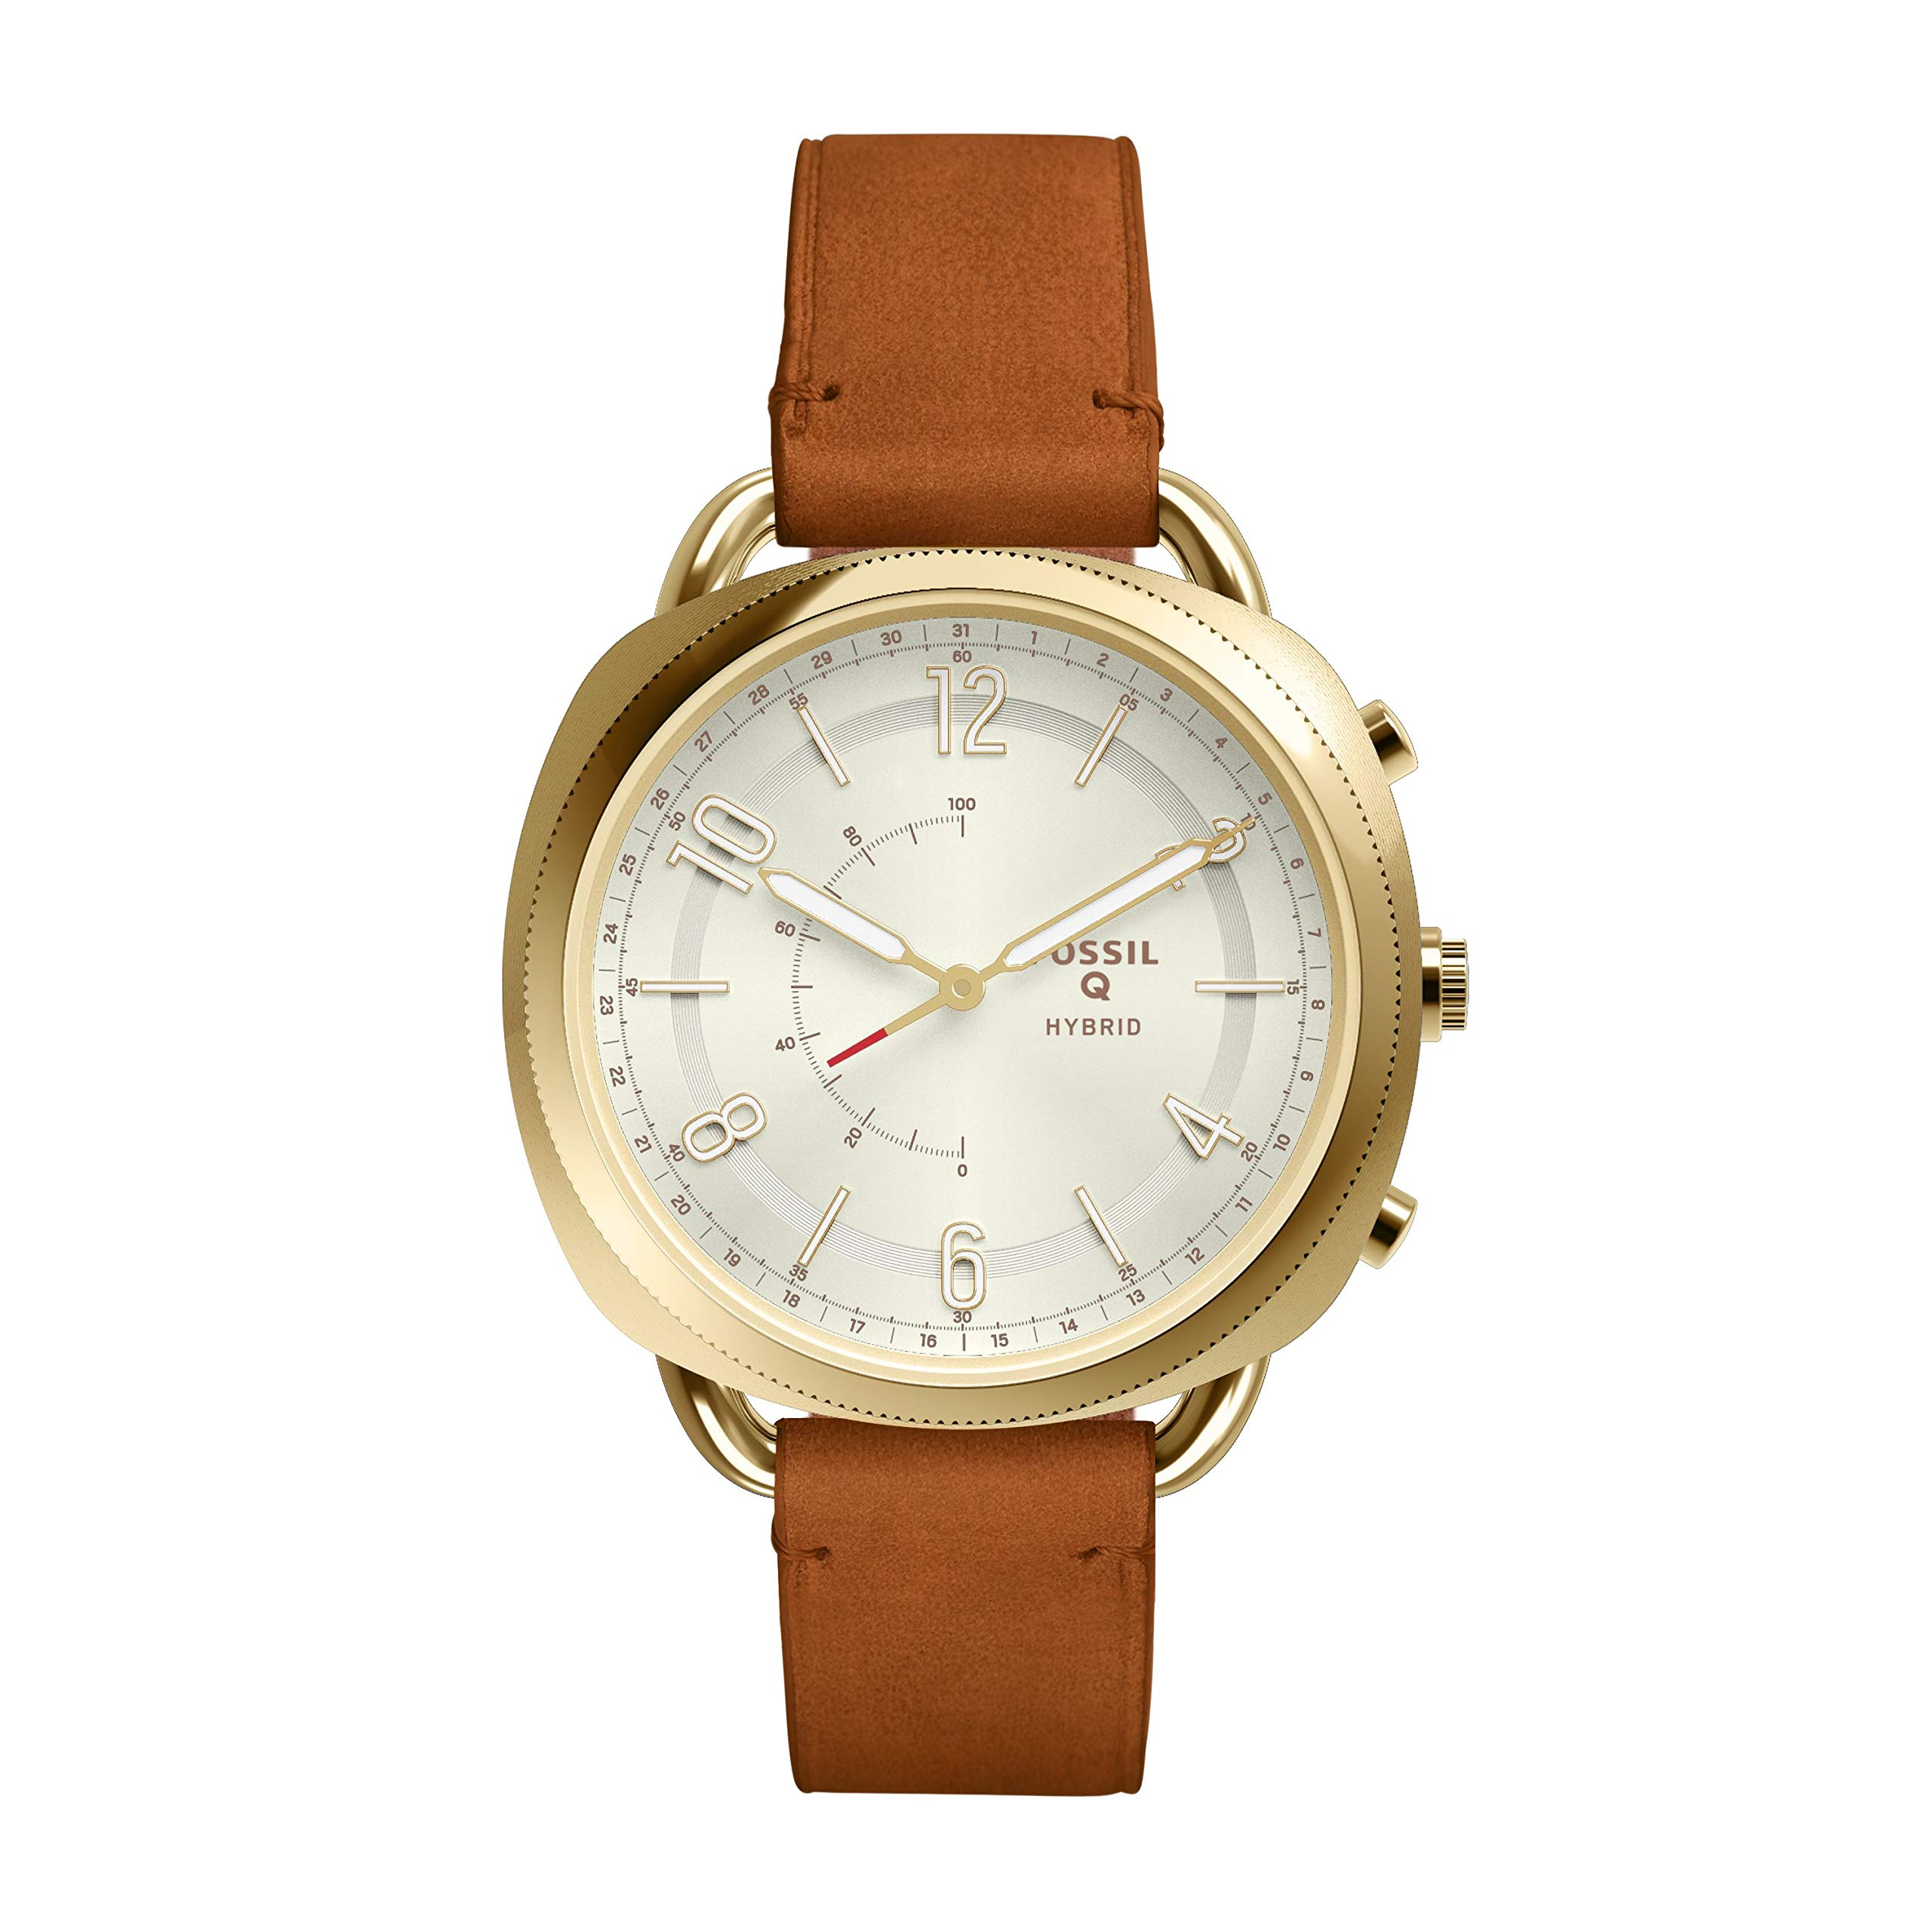 Fossil Women's Accomplice Stainless Steel and Leather Hybrid Smartwatch, Color: Gold, Tan (Model: FTW1201) by Fossil